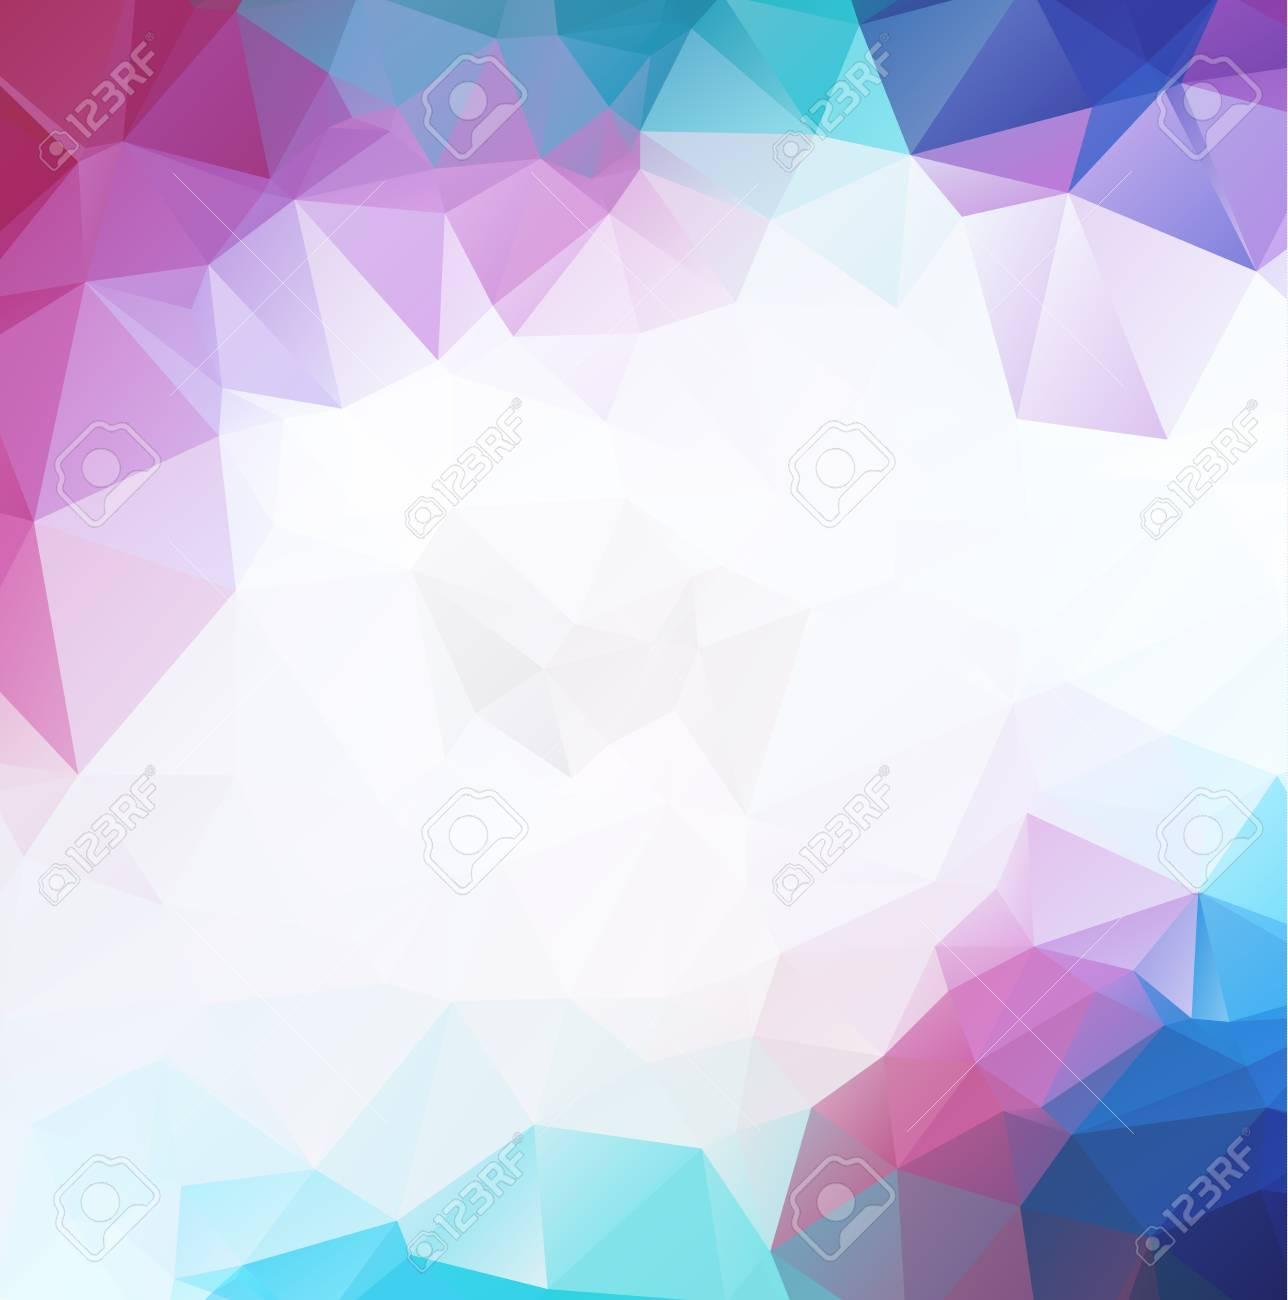 Purple Colorful Geometric Background Origami Style With Moasic     Purple colorful geometric background Origami style with moasic background  or light purple background Stock Vector